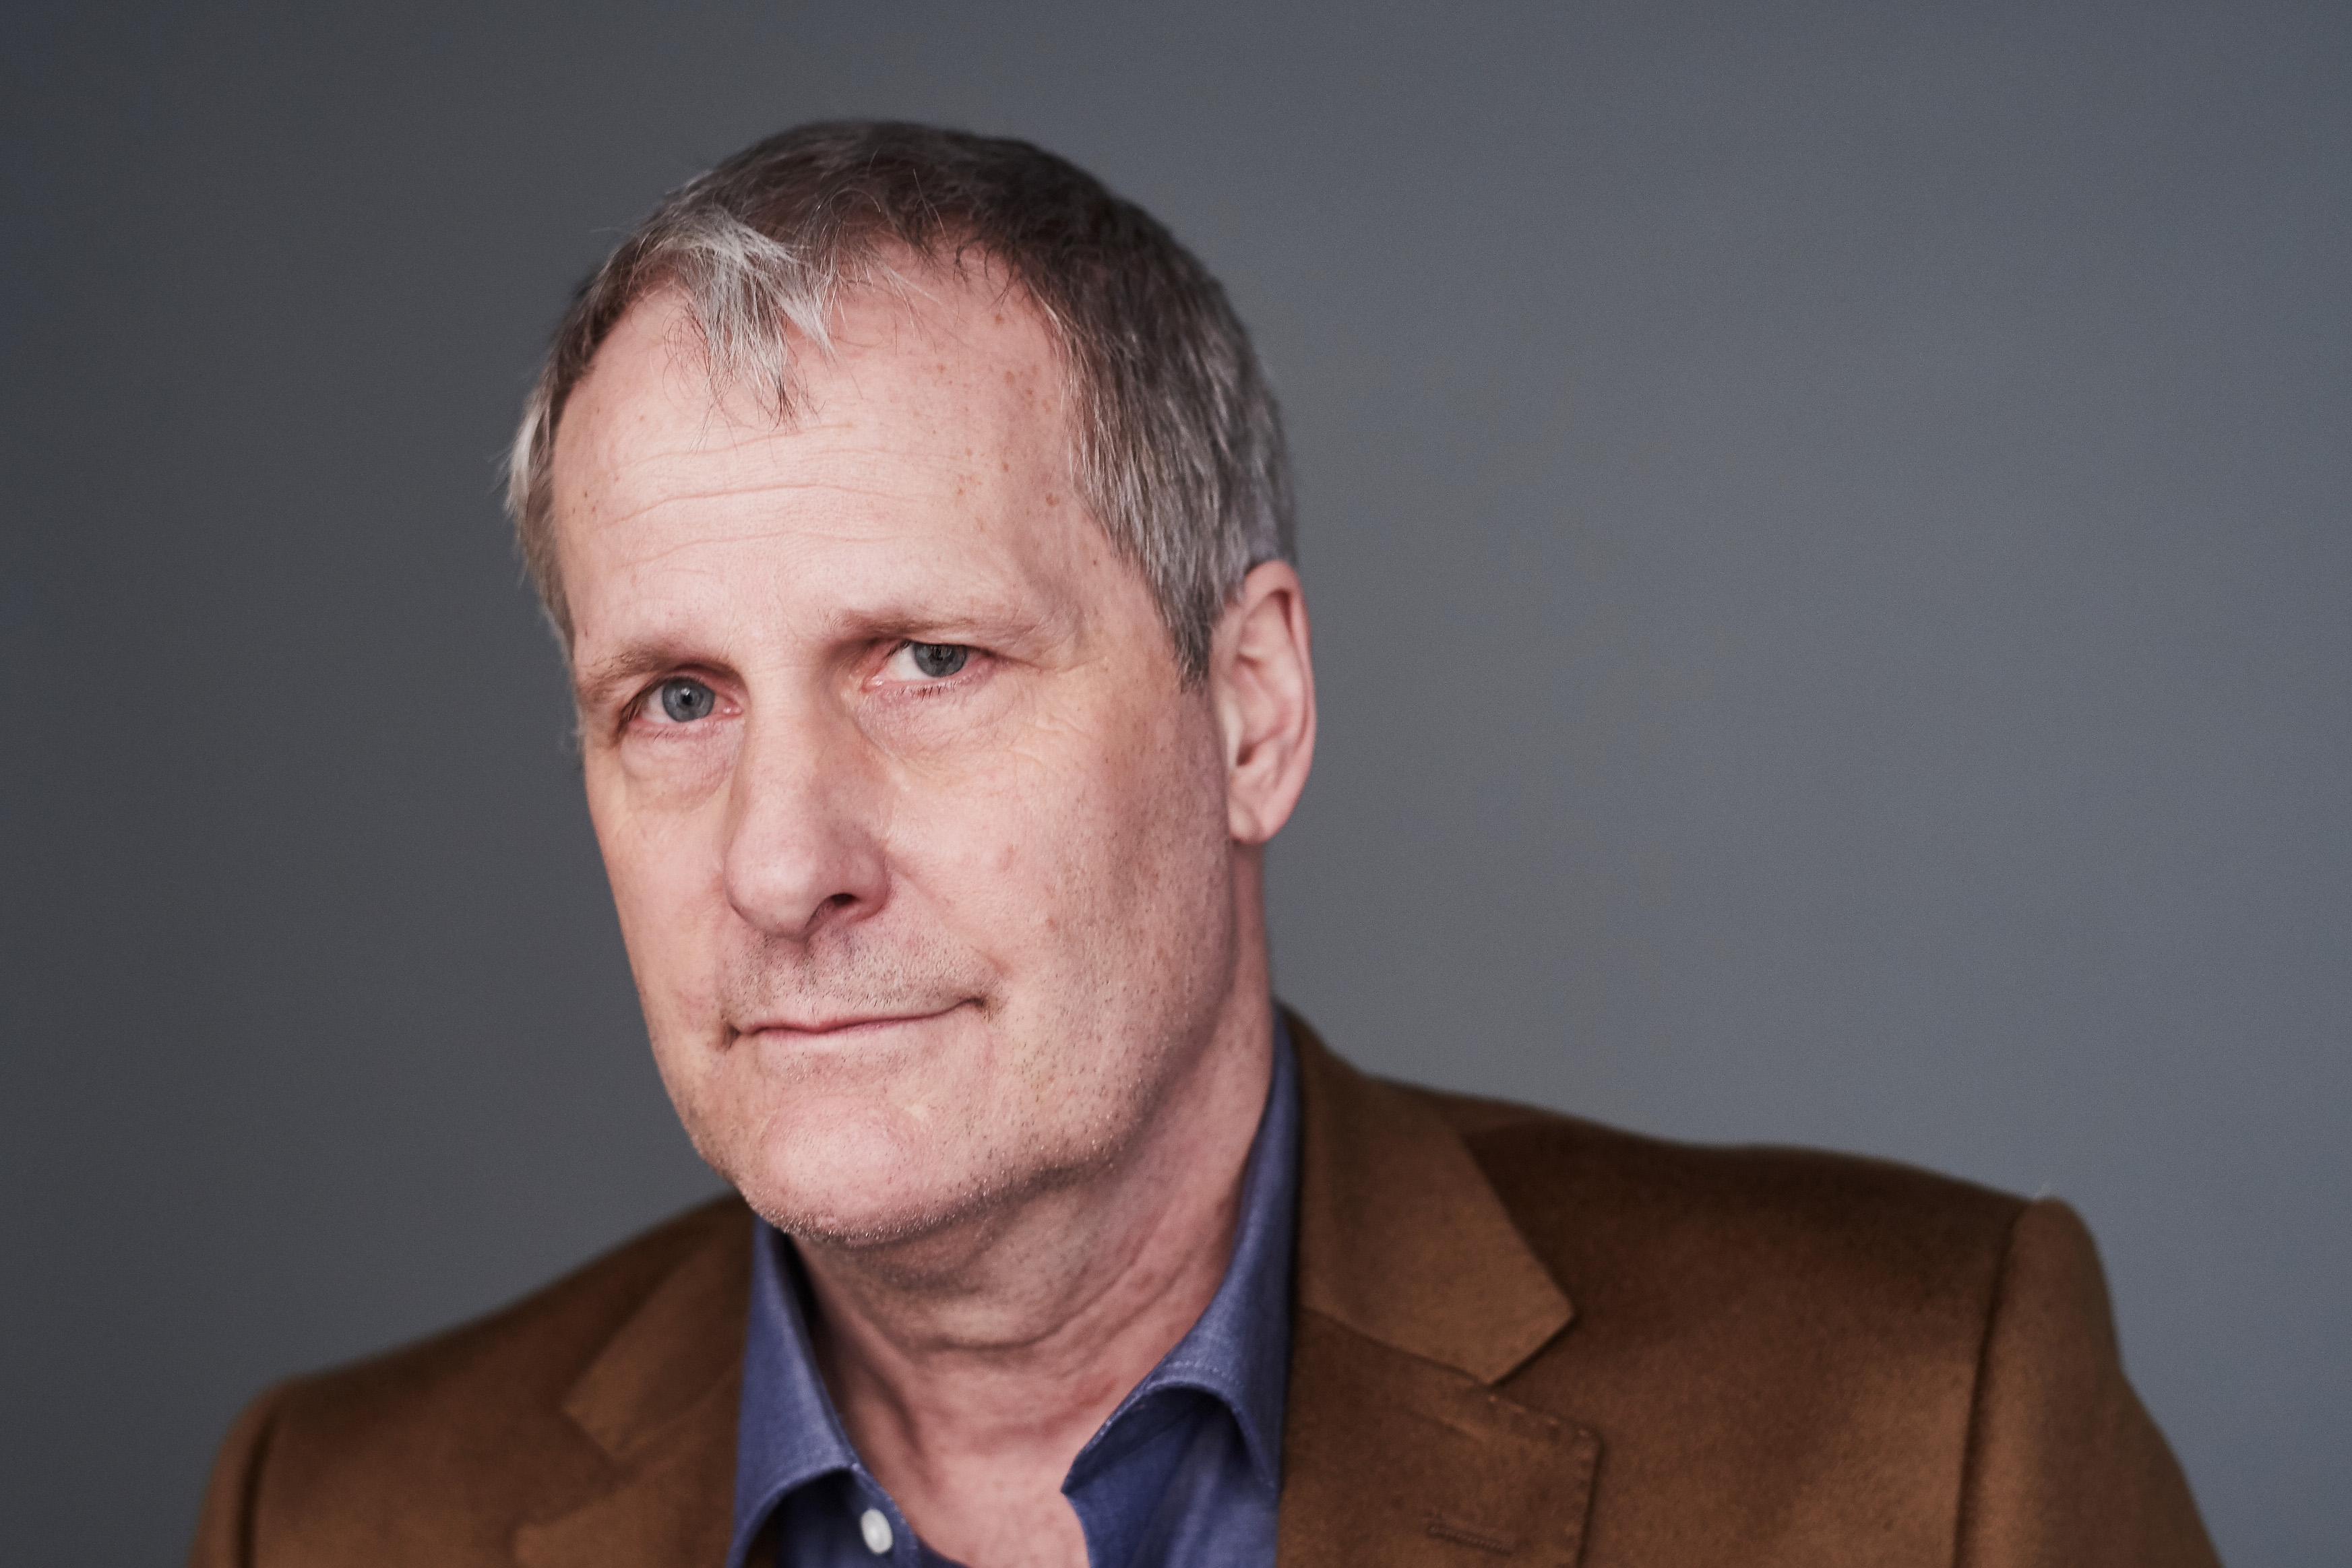 Actor Jeff Daniels poses for a portrait at the 2016 Tony Awards Meet The Nominees Press Reception on May 4, 2016 in New York City.